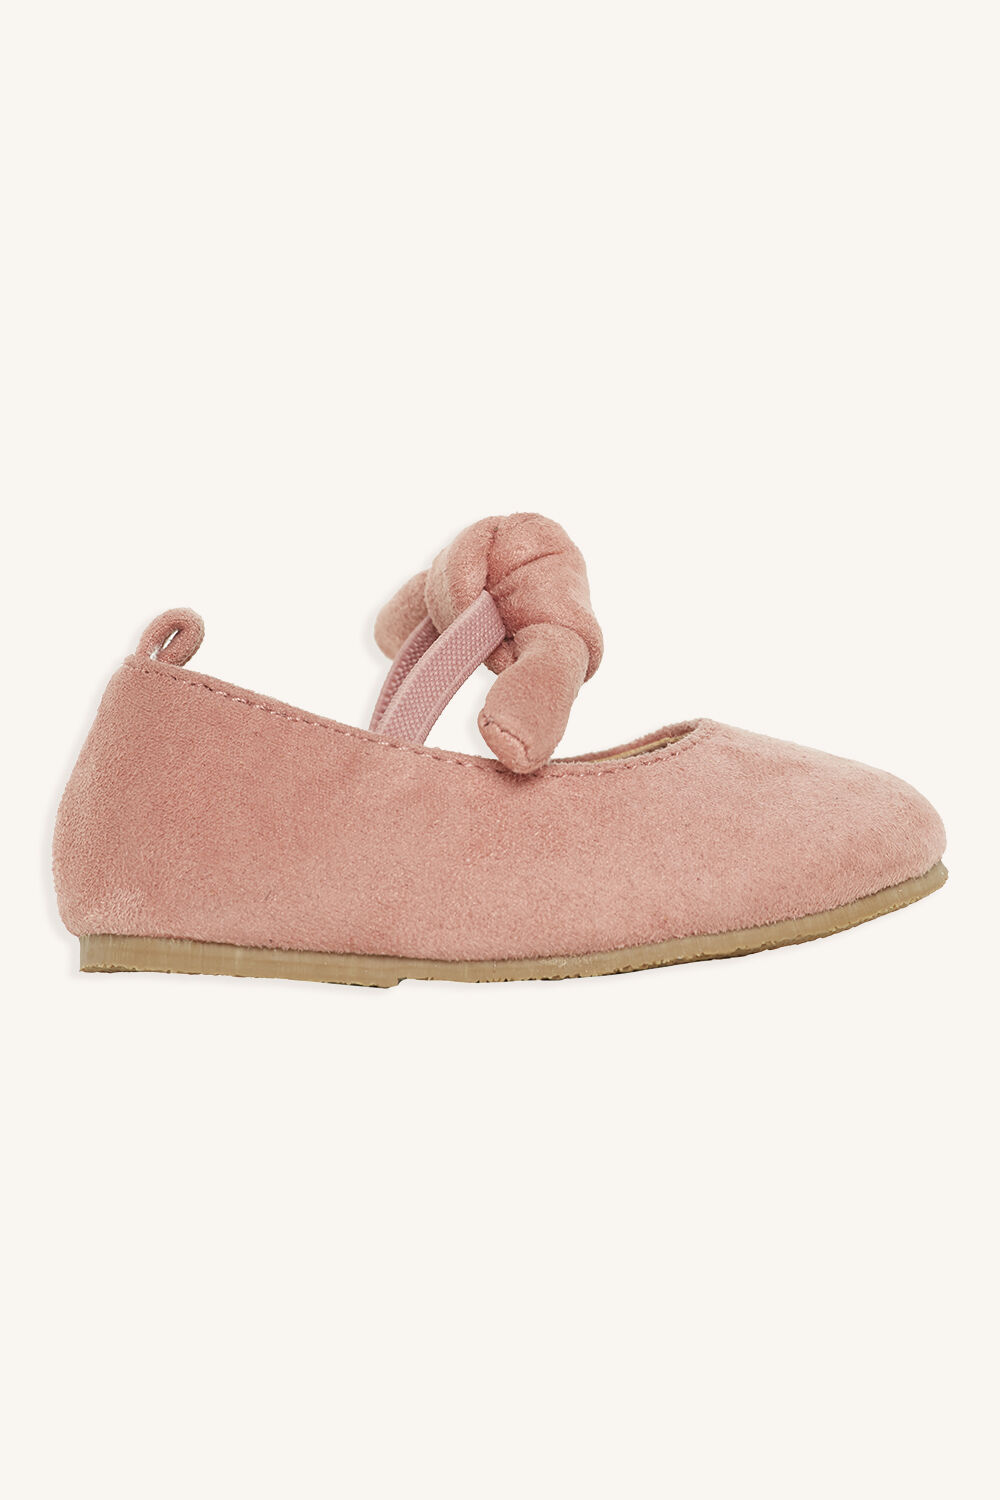 TODDLER KNOT BOW BALLET FLAT in colour PINK CARNATION